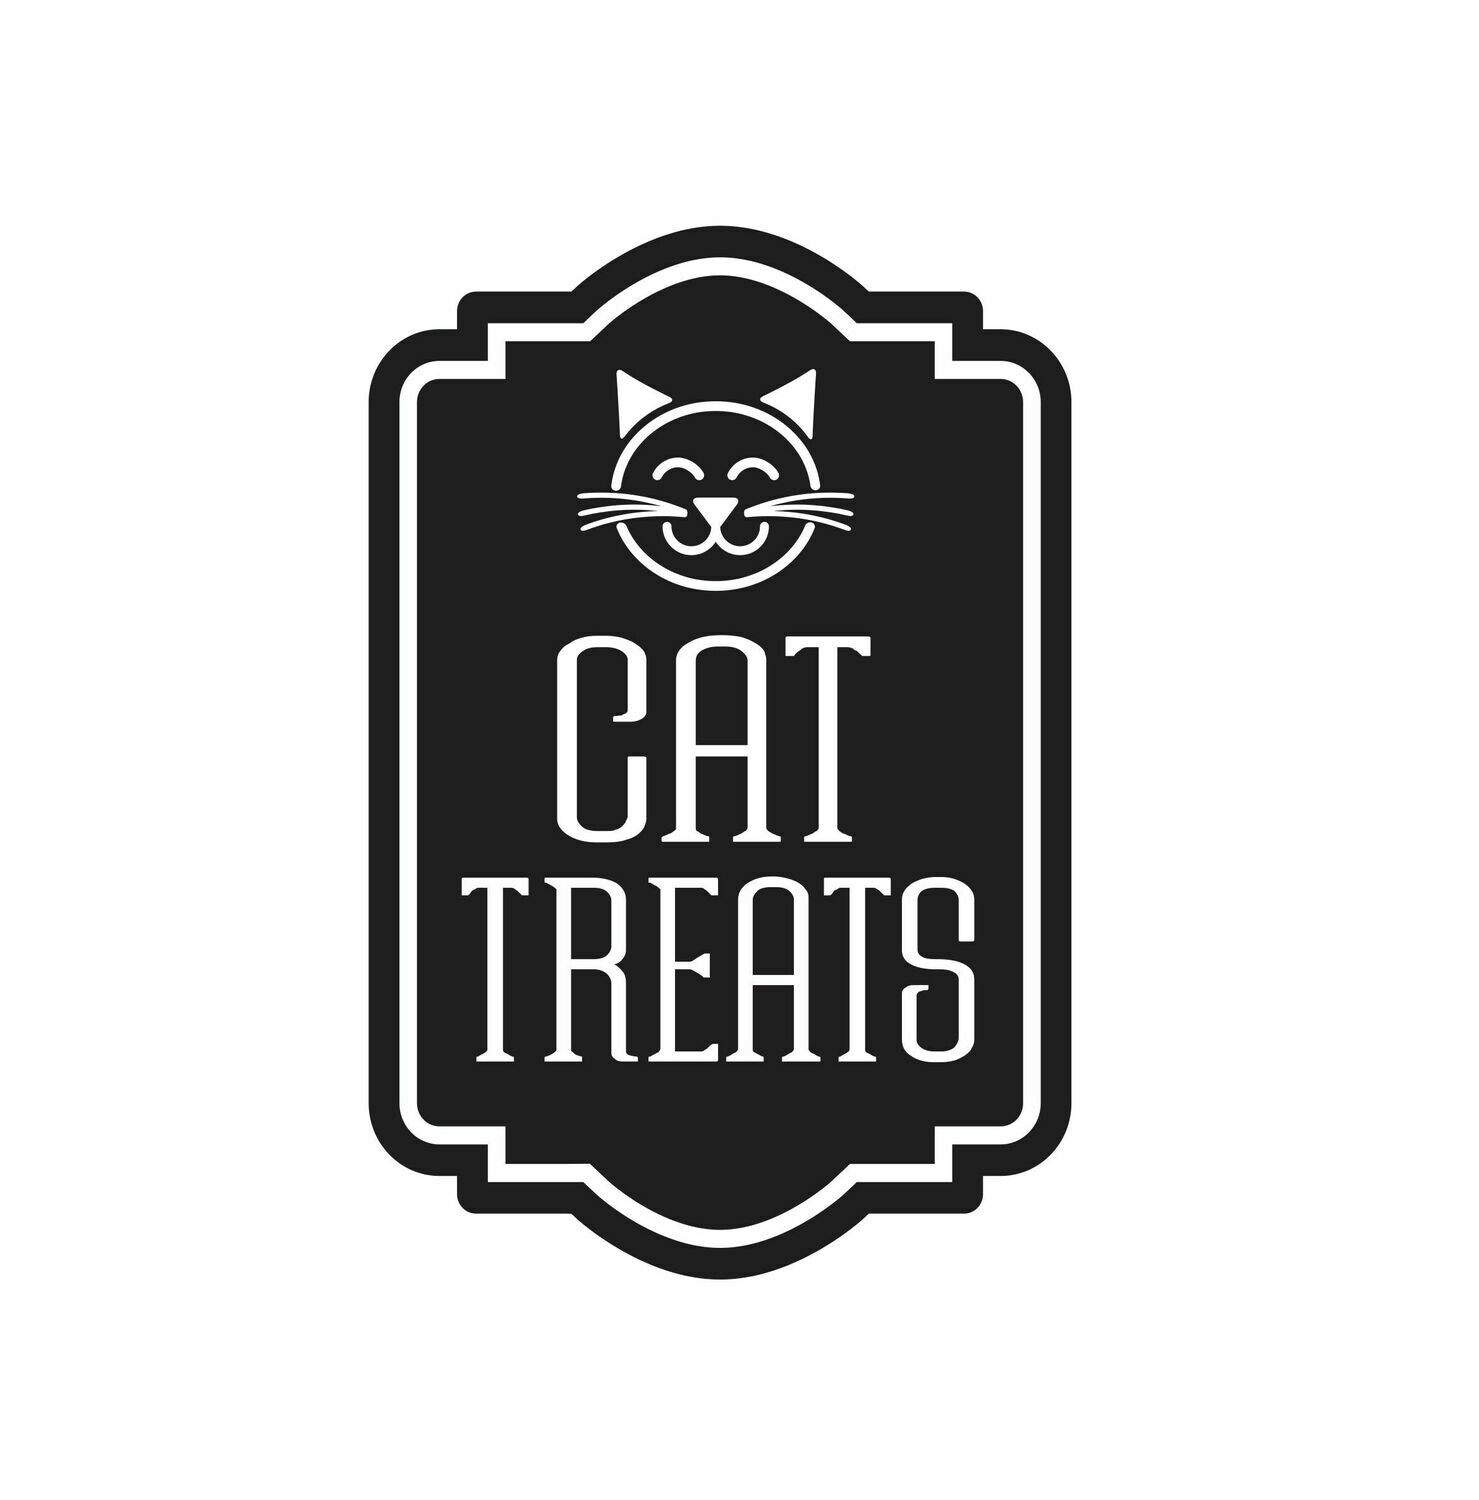 Cat Treats Decal - happy cat face